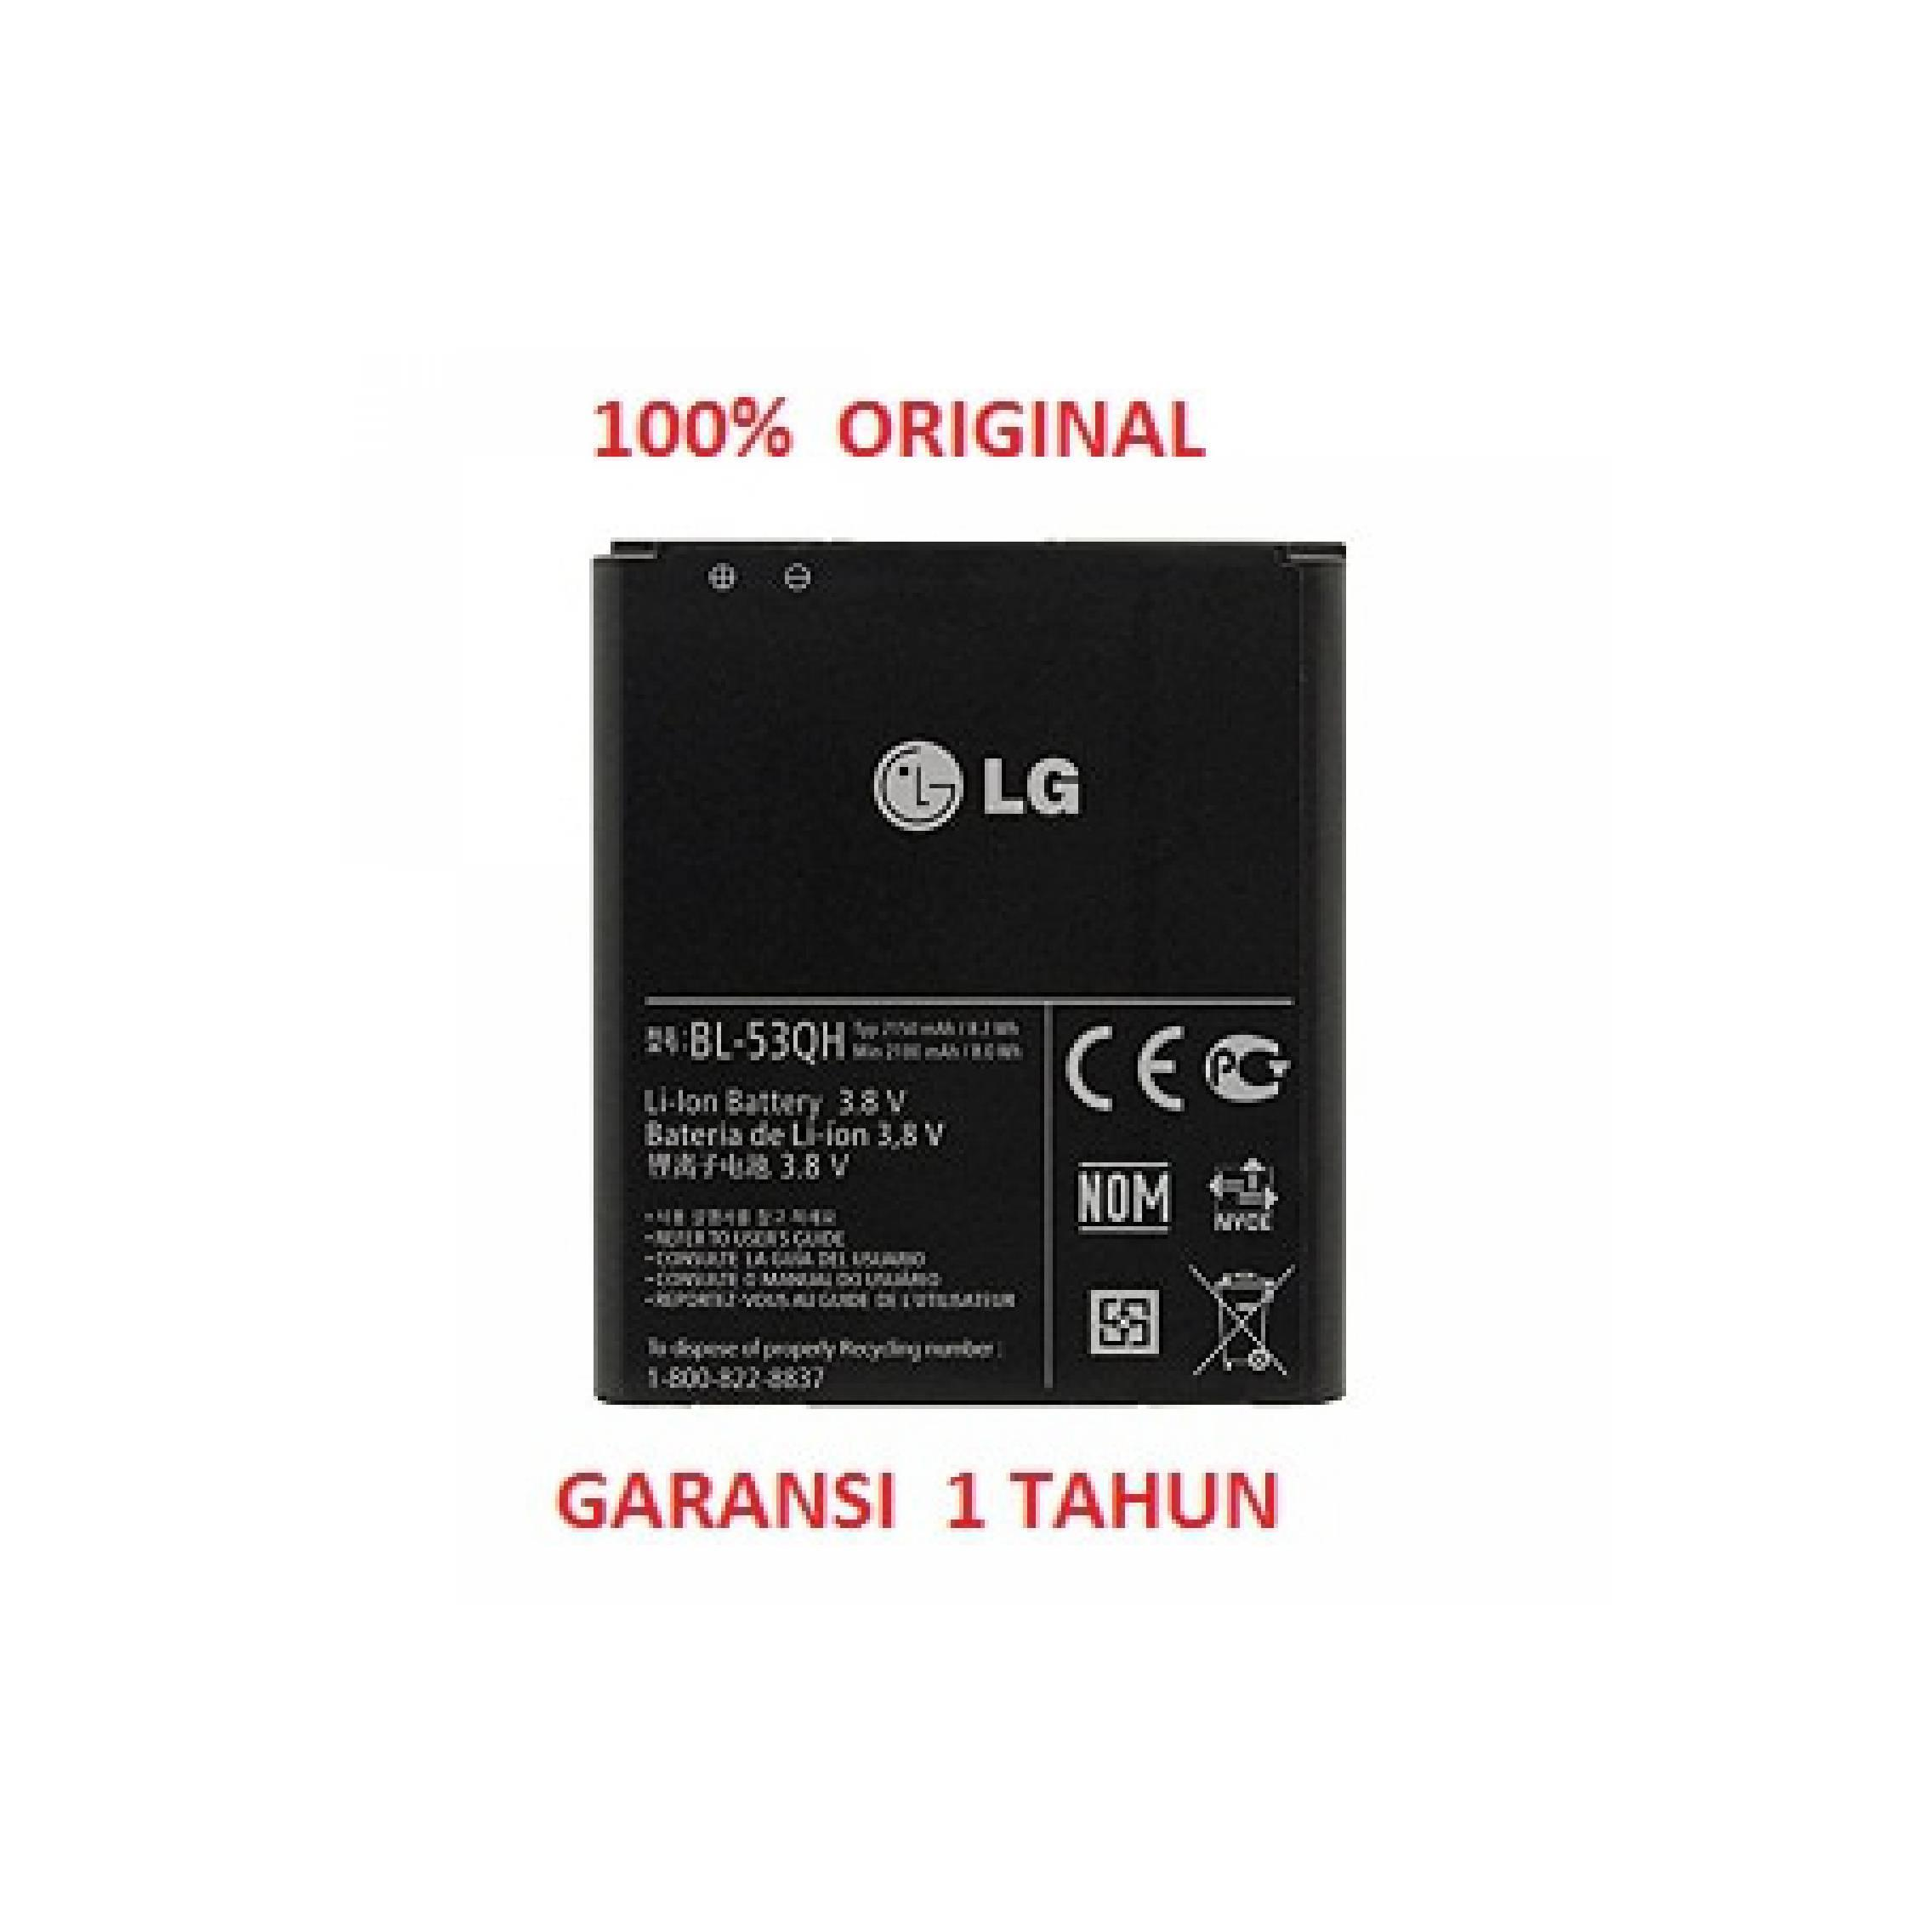 100% ORIGINAL Battery LG BL-53QH / Optimus 4x, Optimus L9 II, P760, Dl